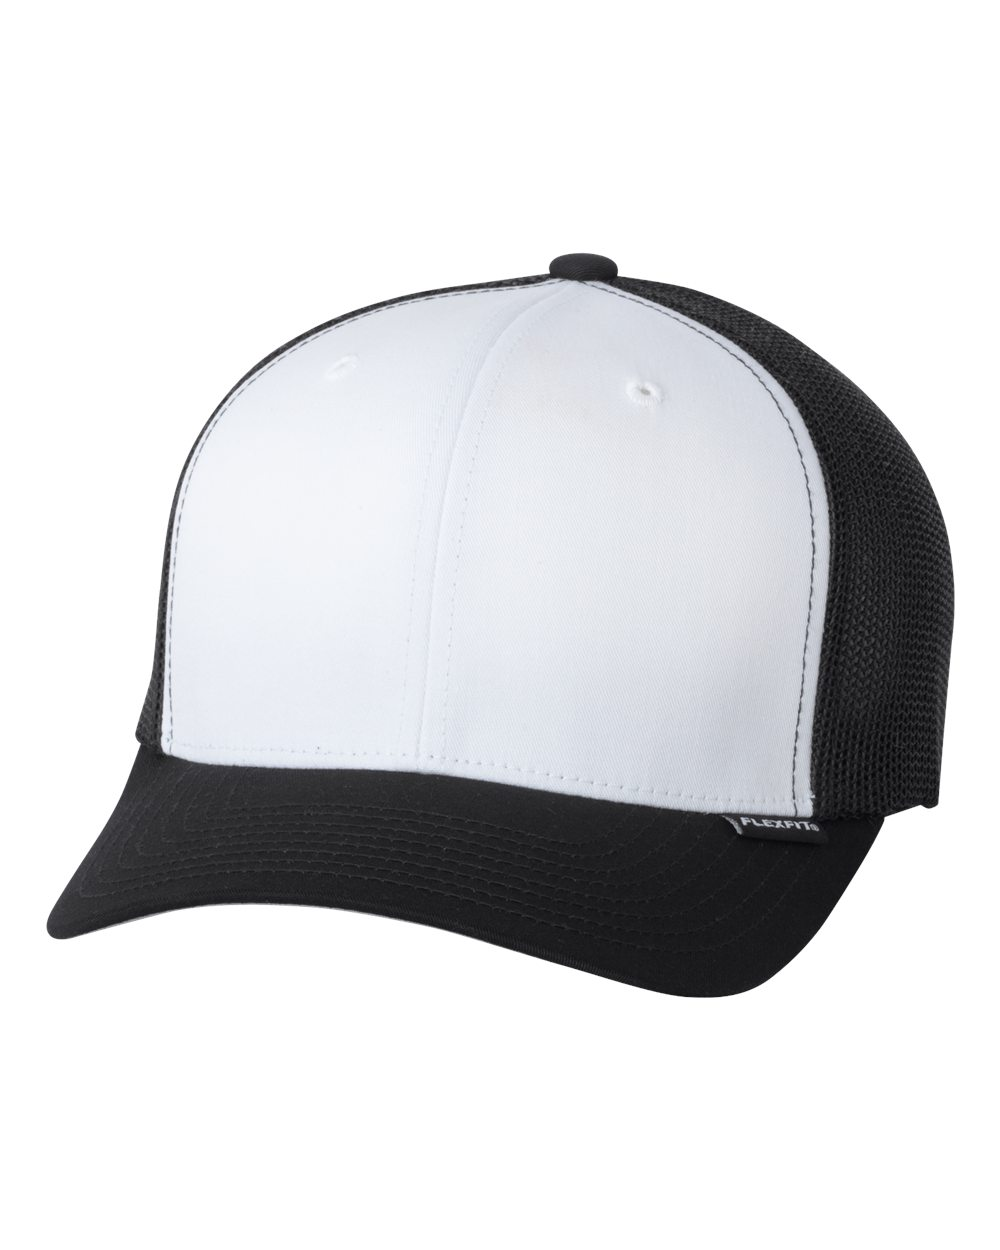 Caps PNG Black And White Transparent Caps Black And White.PNG Images ... 9b734912215